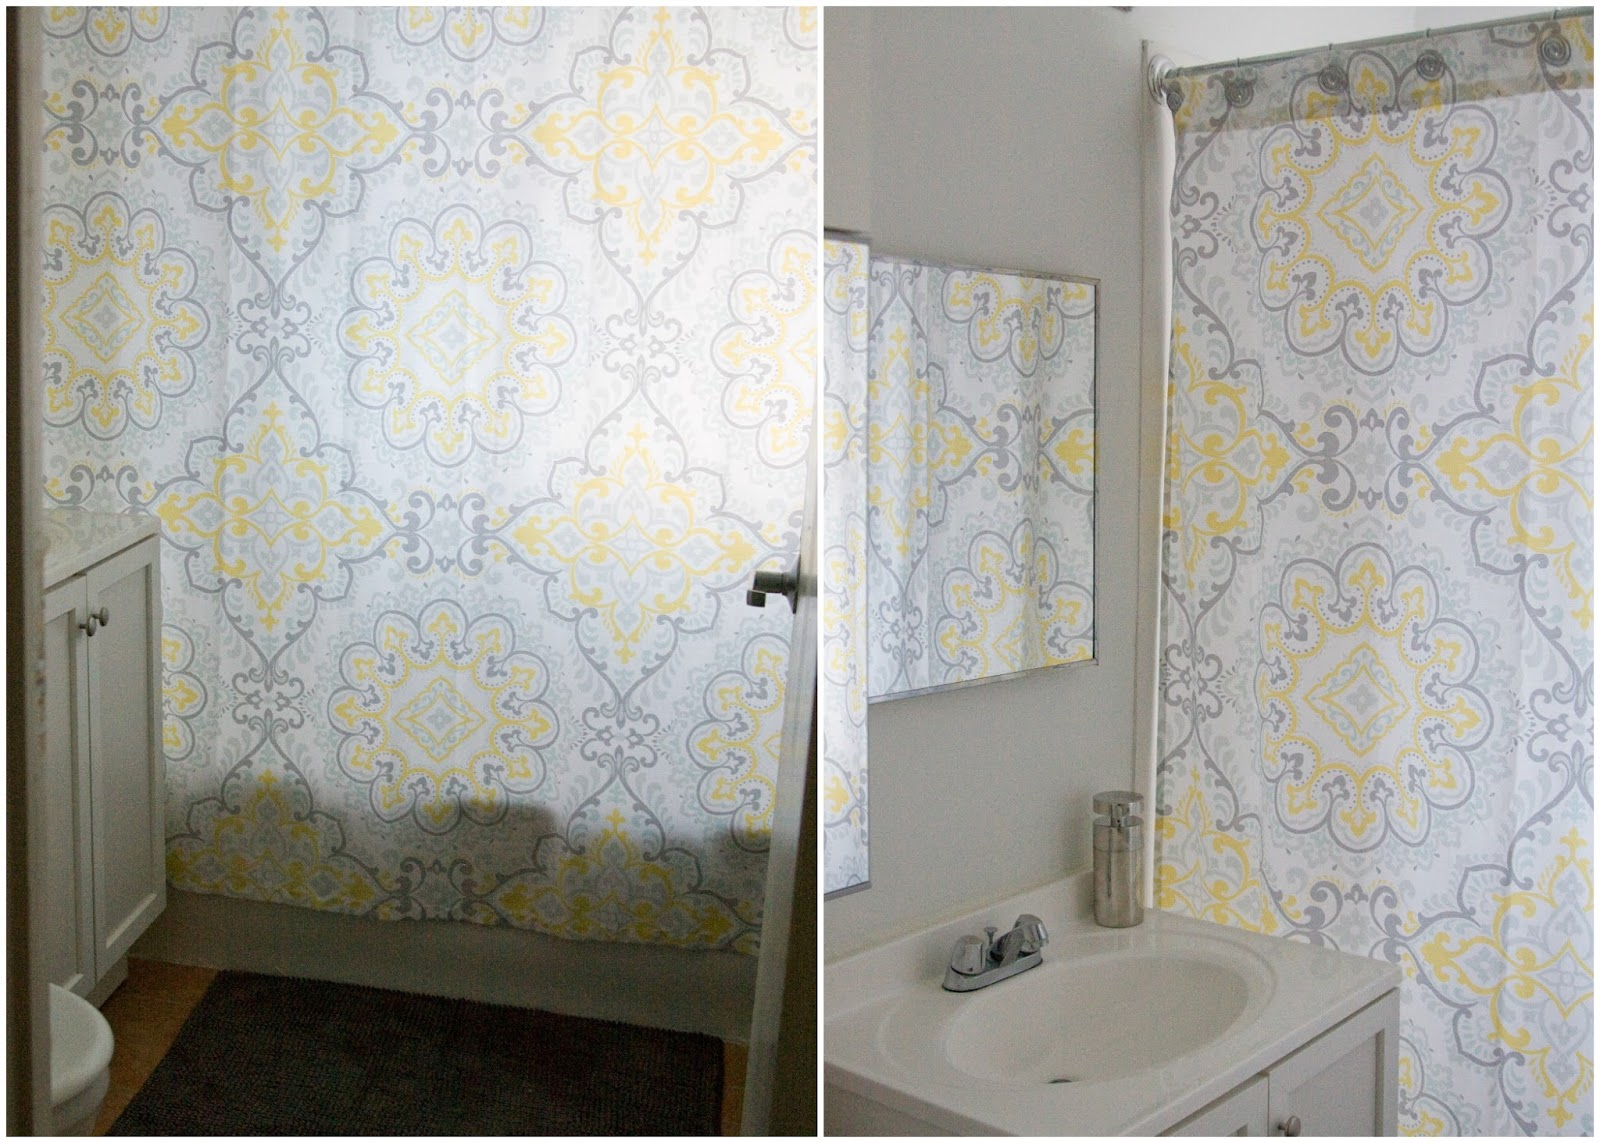 The Word Of A Nerd: A Bathroom Makeover Story